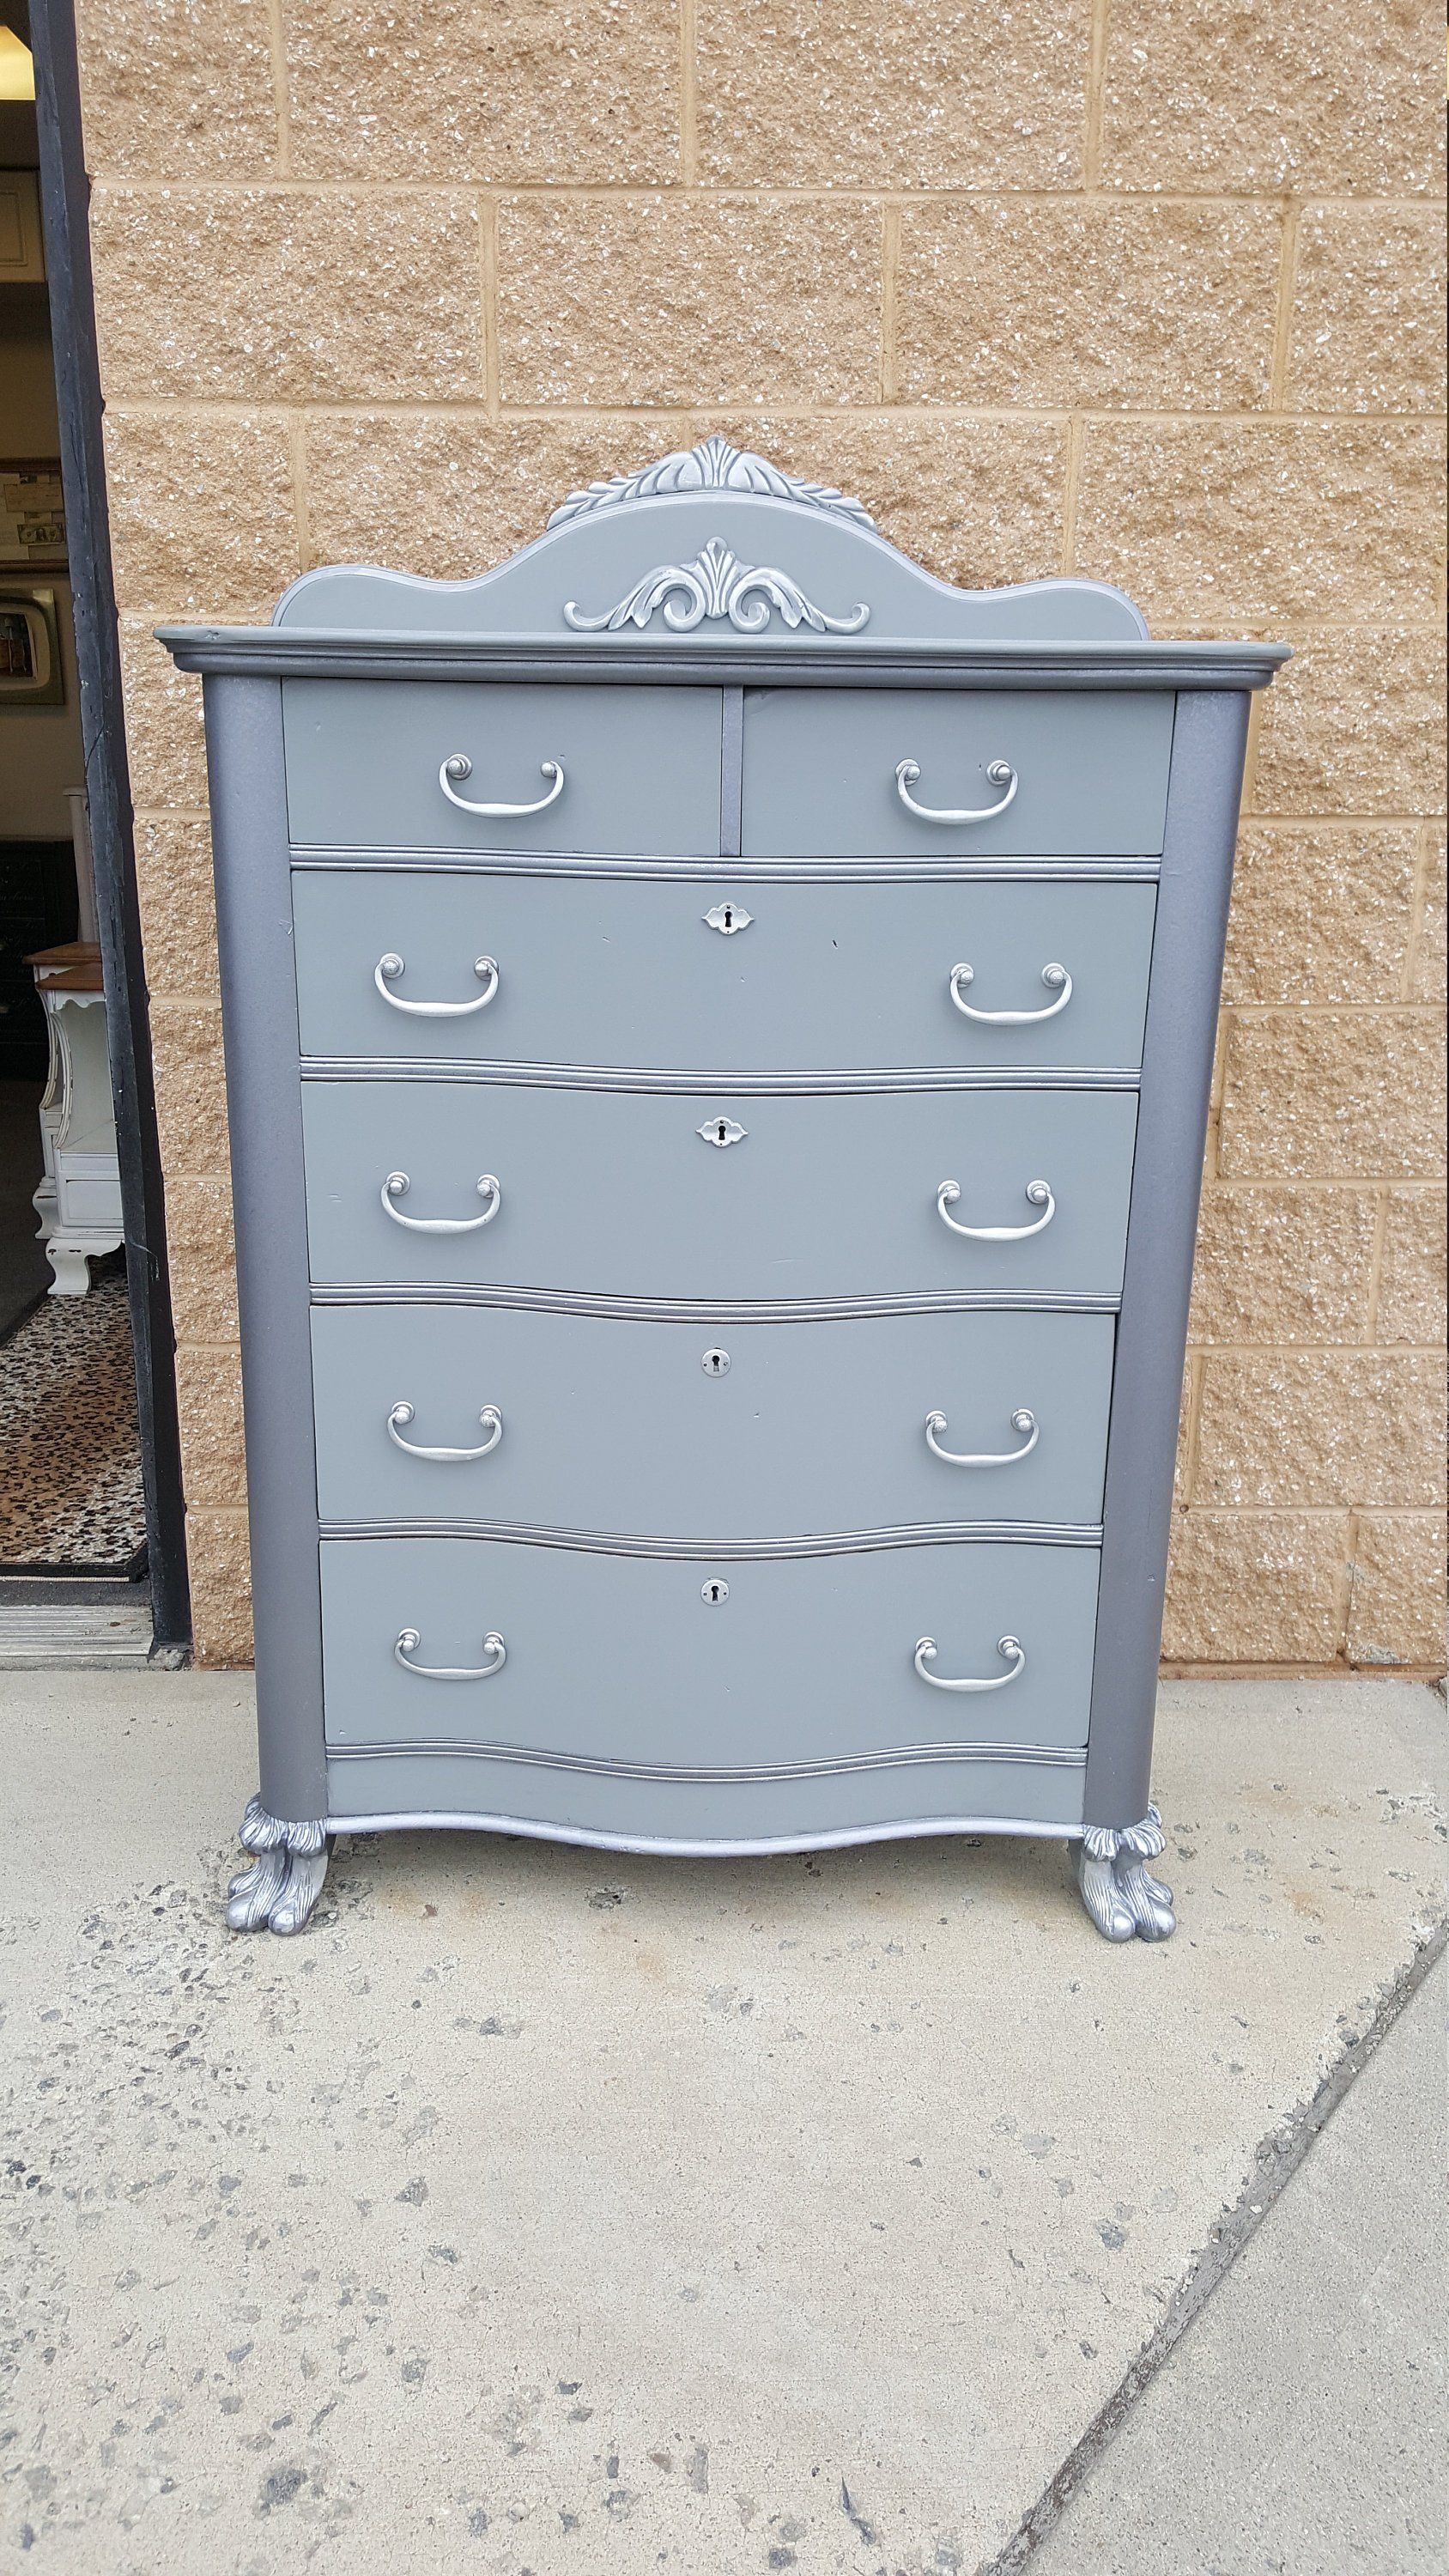 Vintage Metallic 6 Drawer Dresser Drawers Open And Close Smoothly Measures 37 Wide By 21 Deep And 47 T Vintage Painted Furniture Metallic Dresser Shabby Chic [ 3000 x 1688 Pixel ]